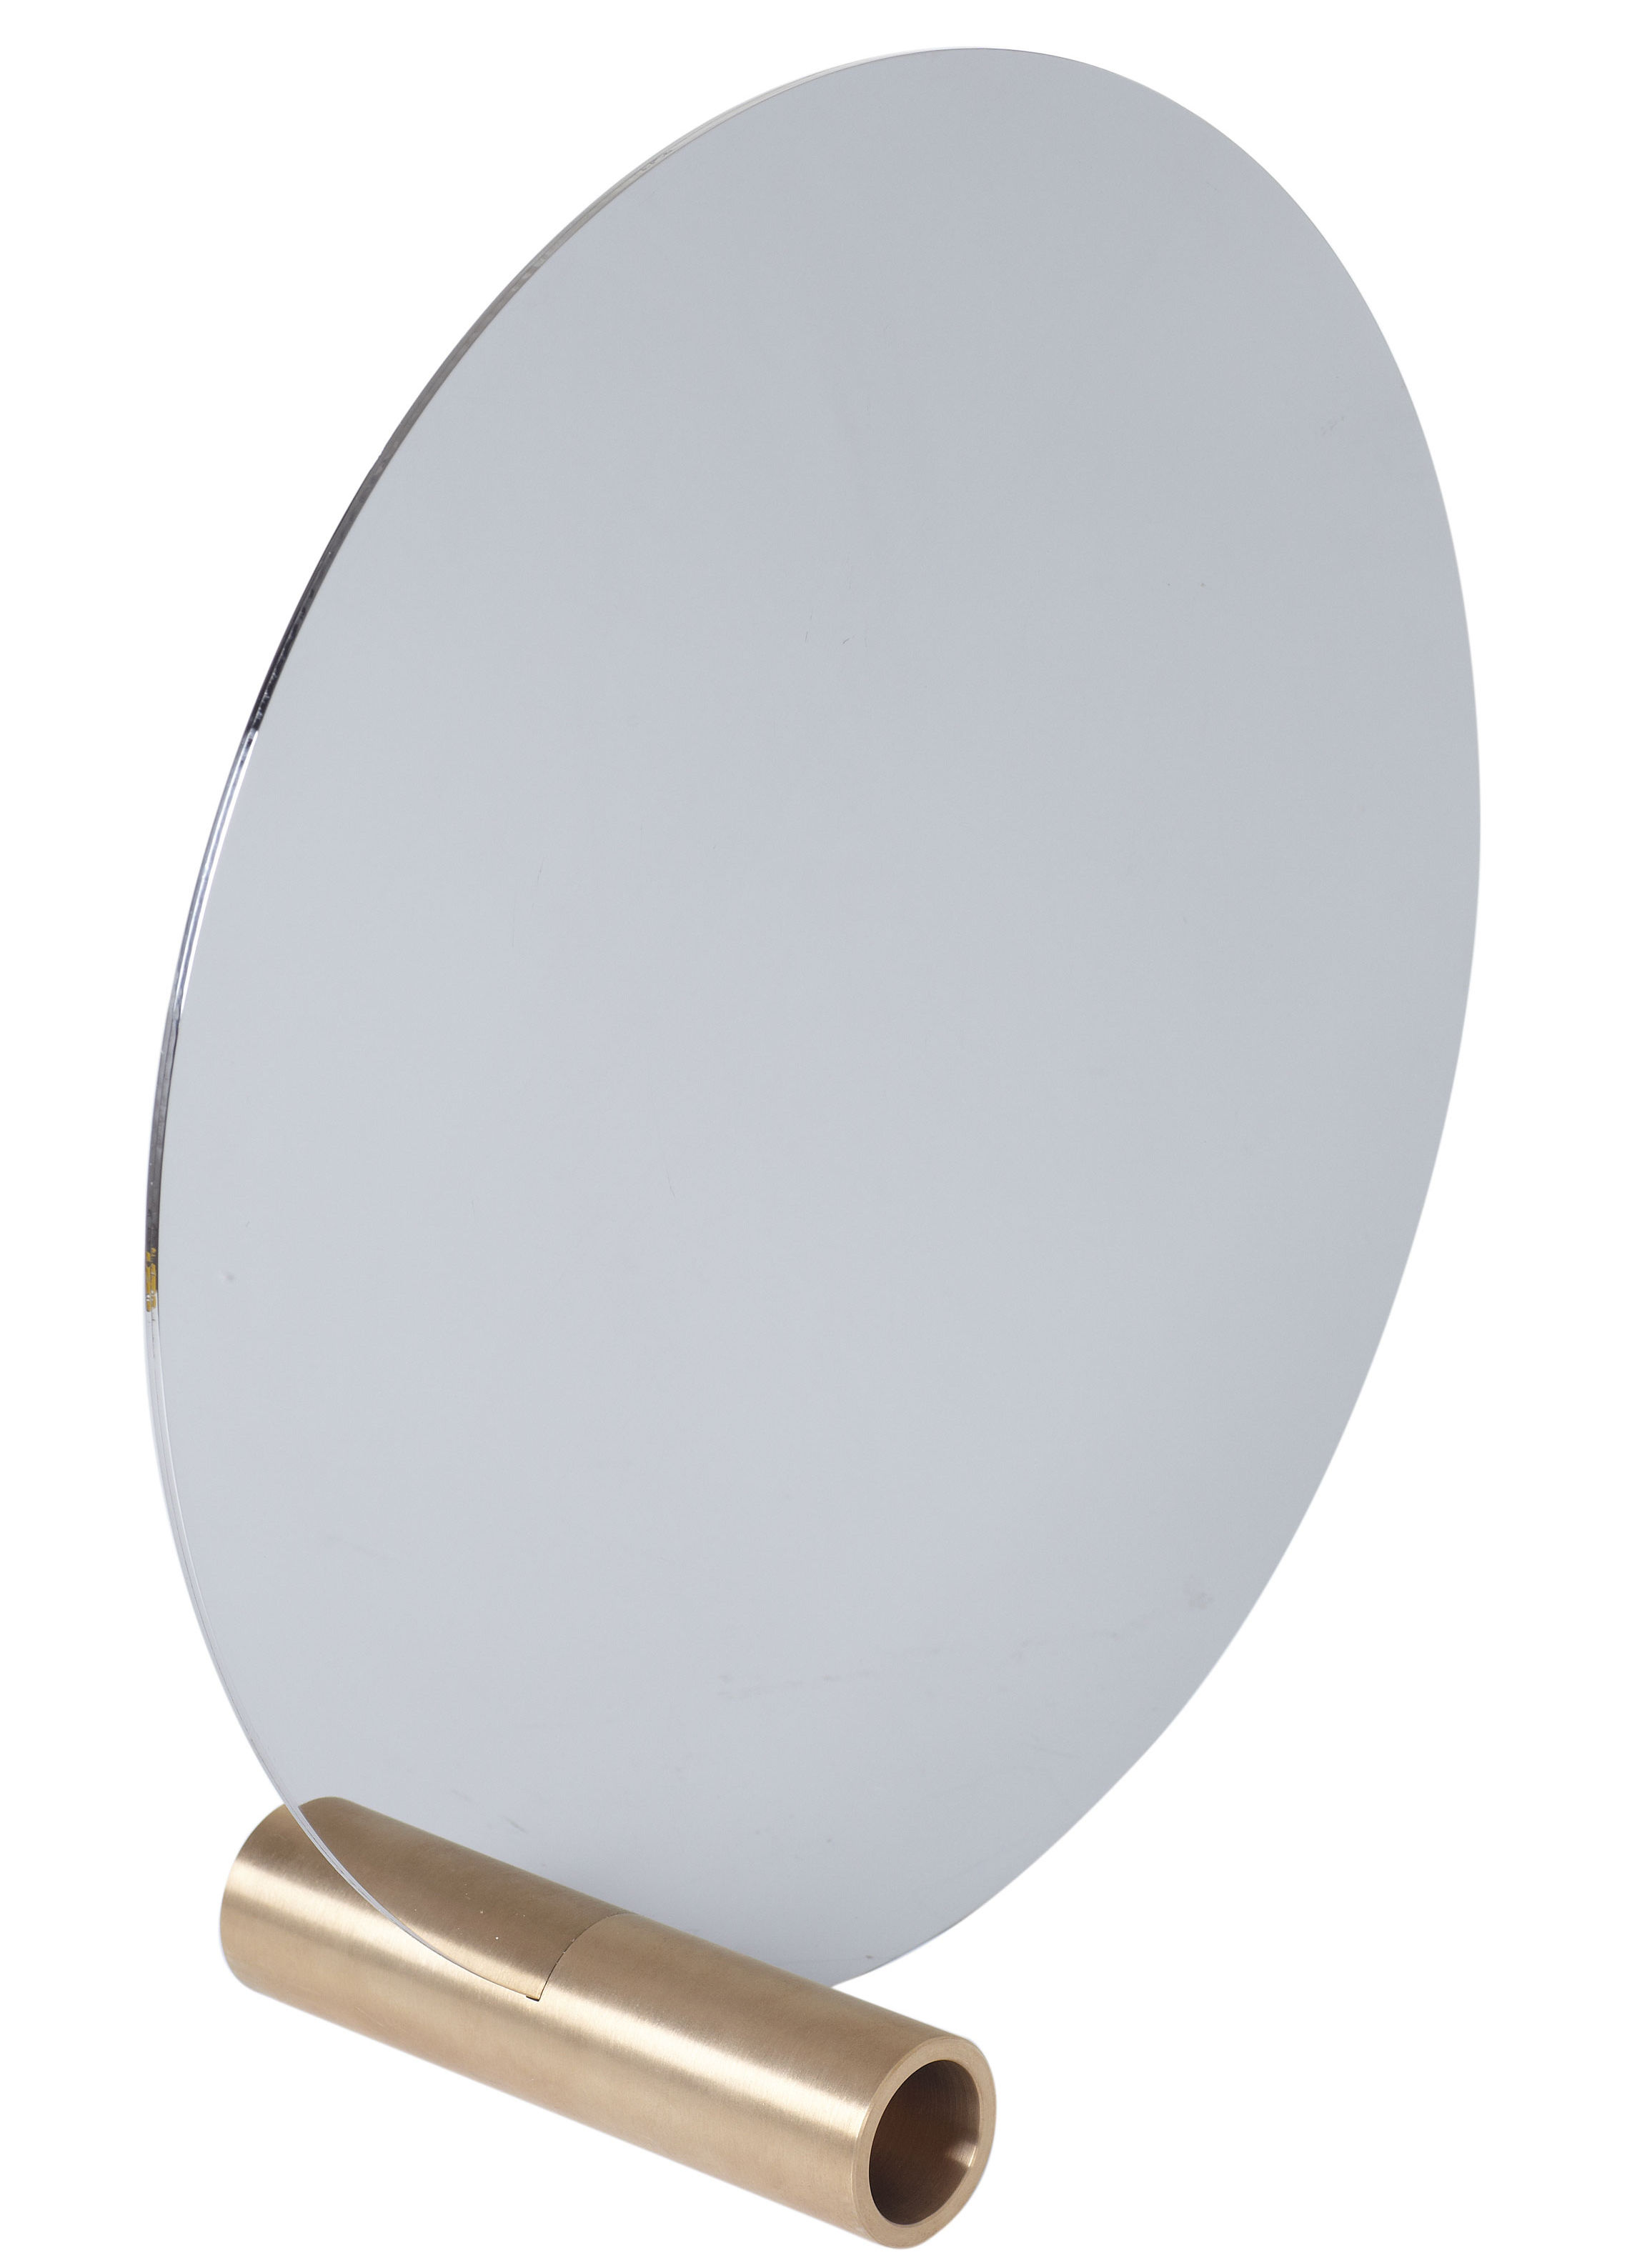 Decoration - Mirrors - Disque Free standing mirrors - Ø 30 cm by L'atelier d'exercices - Mirror / Brass - Polished stainless steel, Solid brass